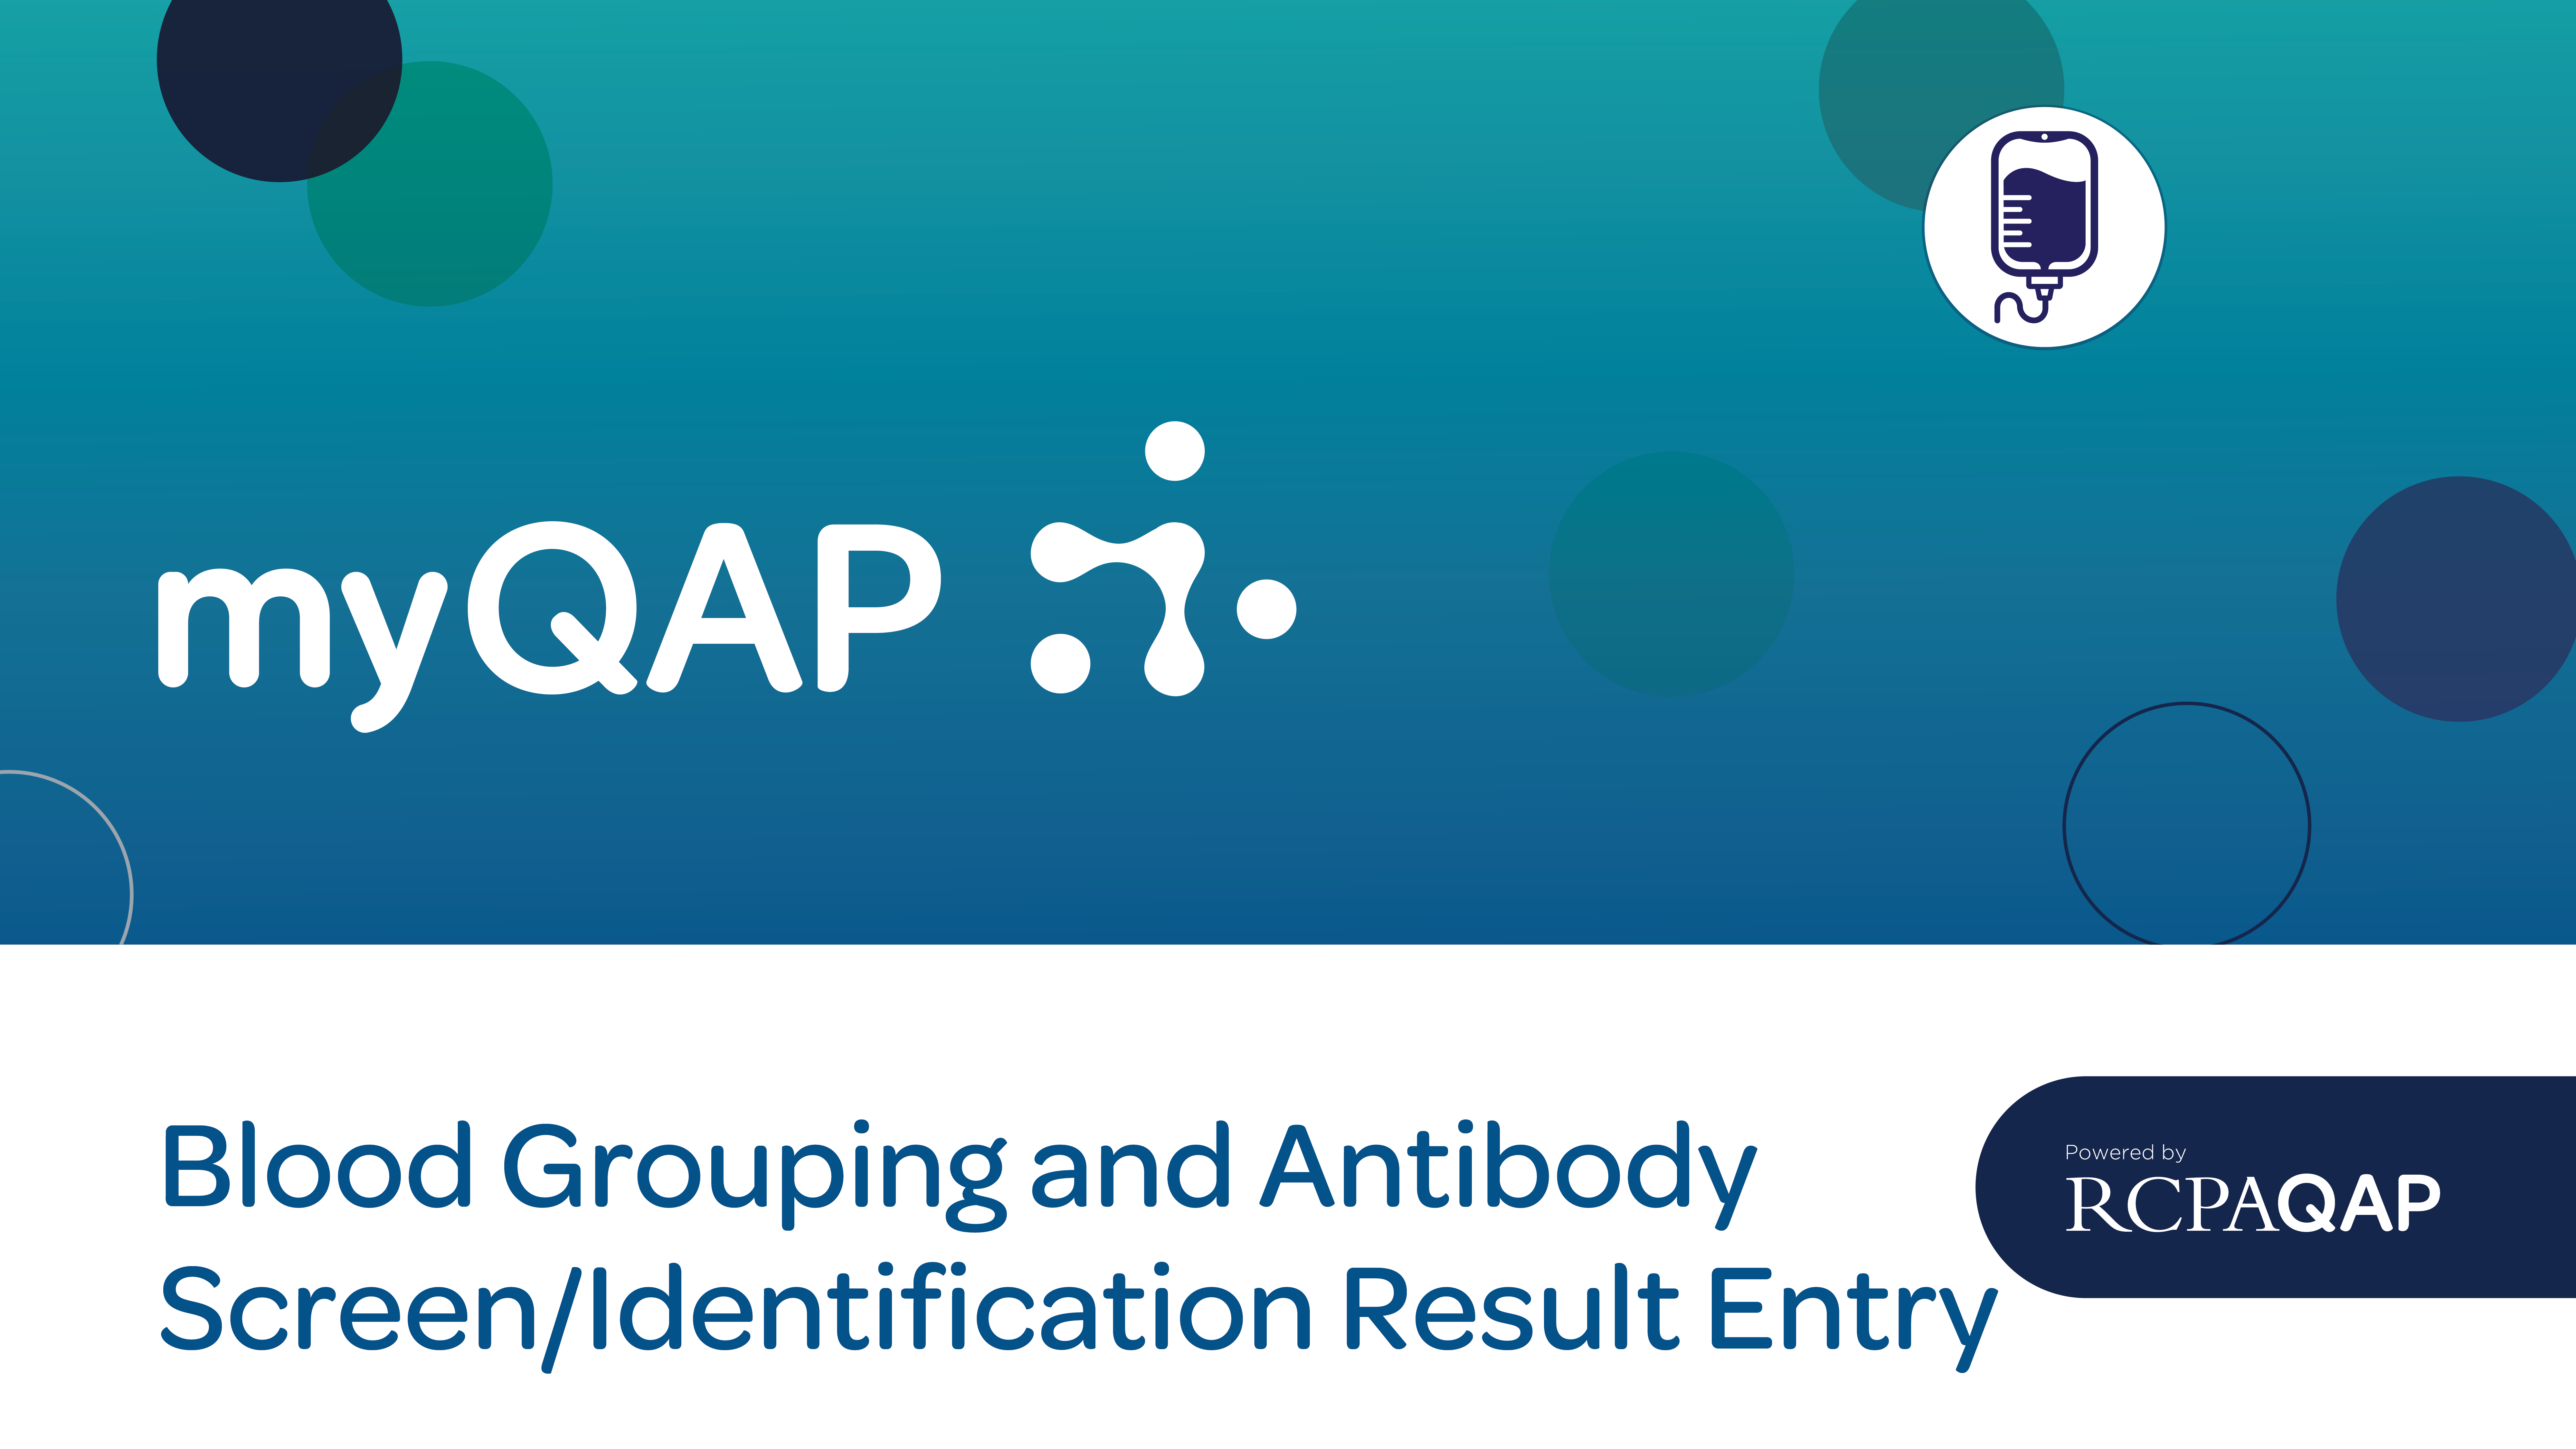 Blood Grouping and Antibody Screen/Identification Result Entry